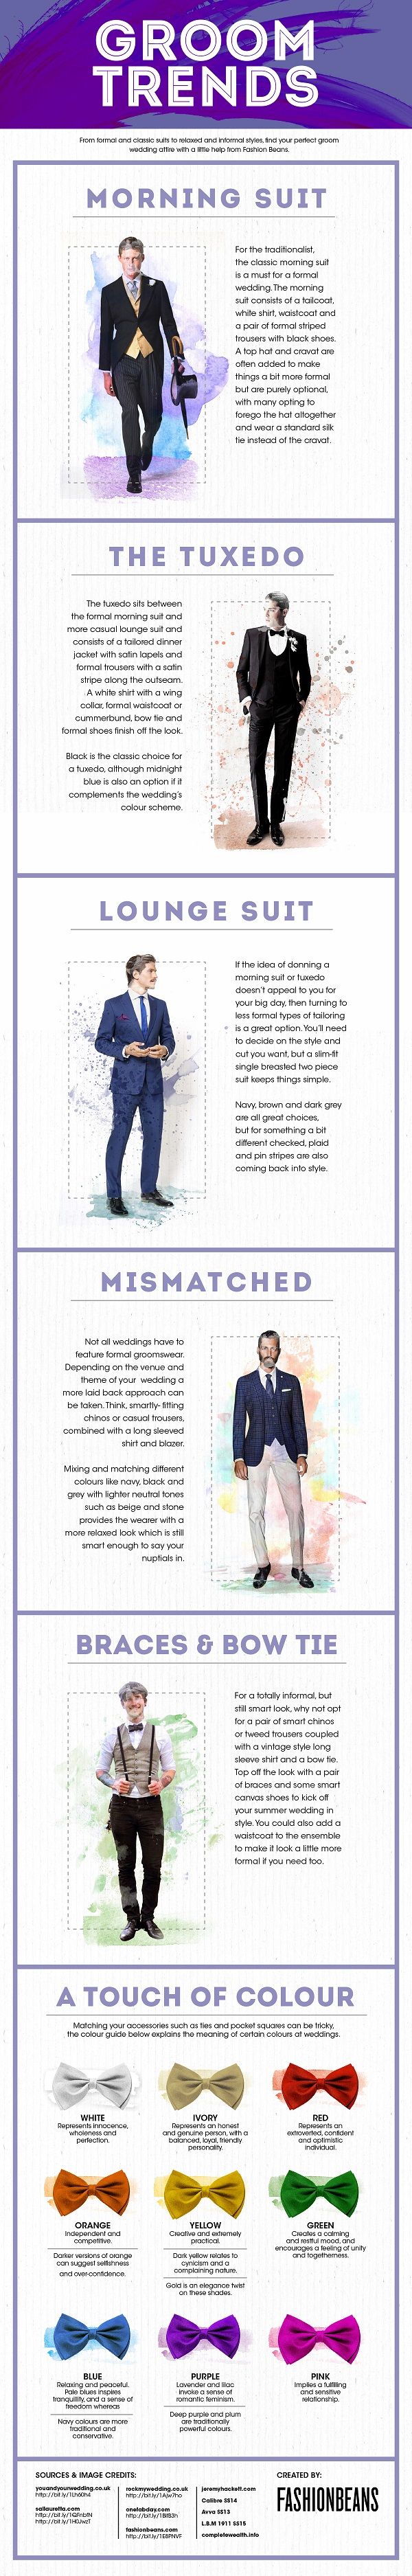 groom-infographic